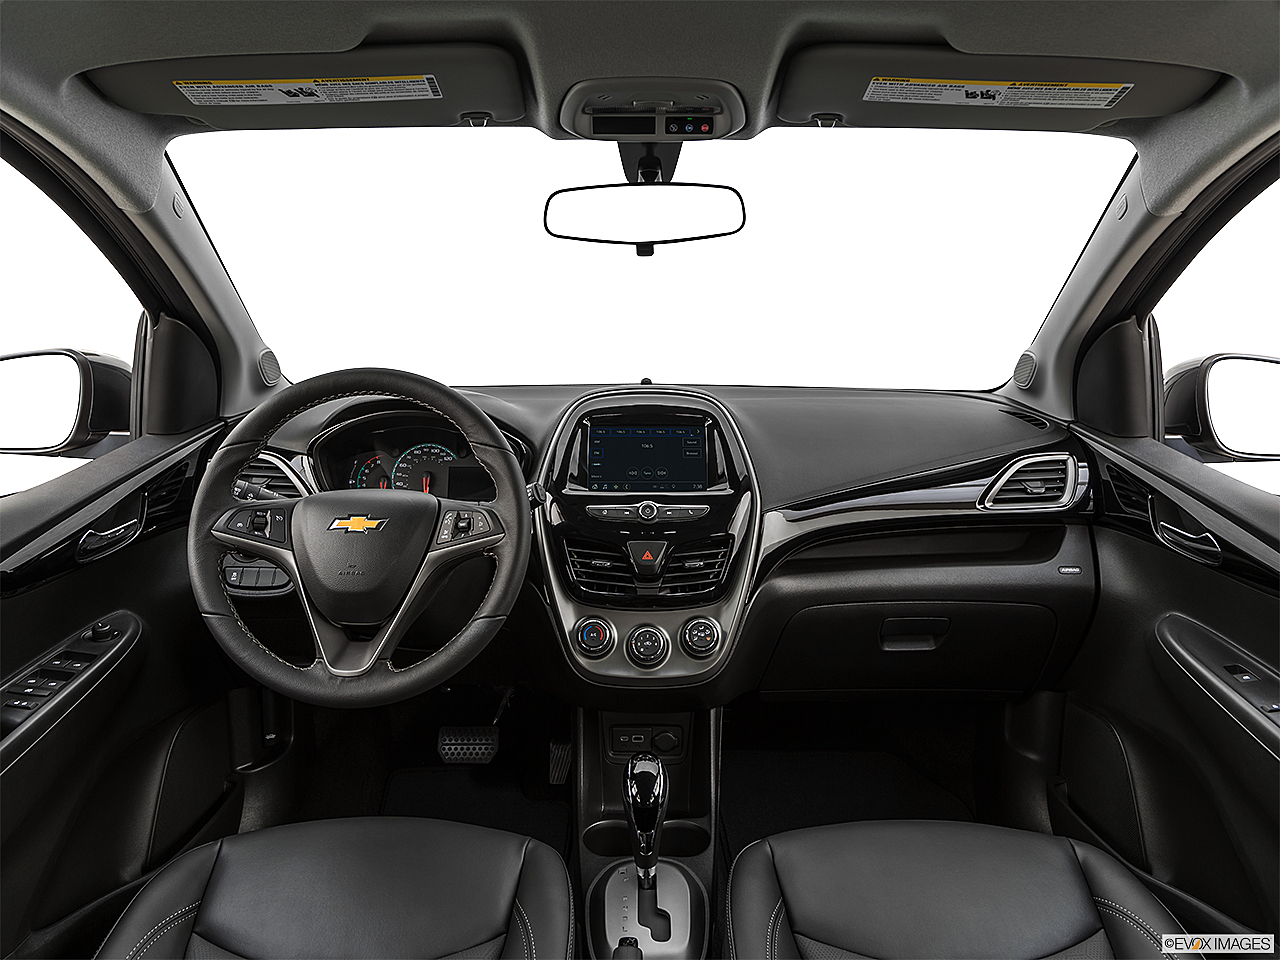 2019 Chevrolet Spark 2LT Automatic, centered wide dash shot